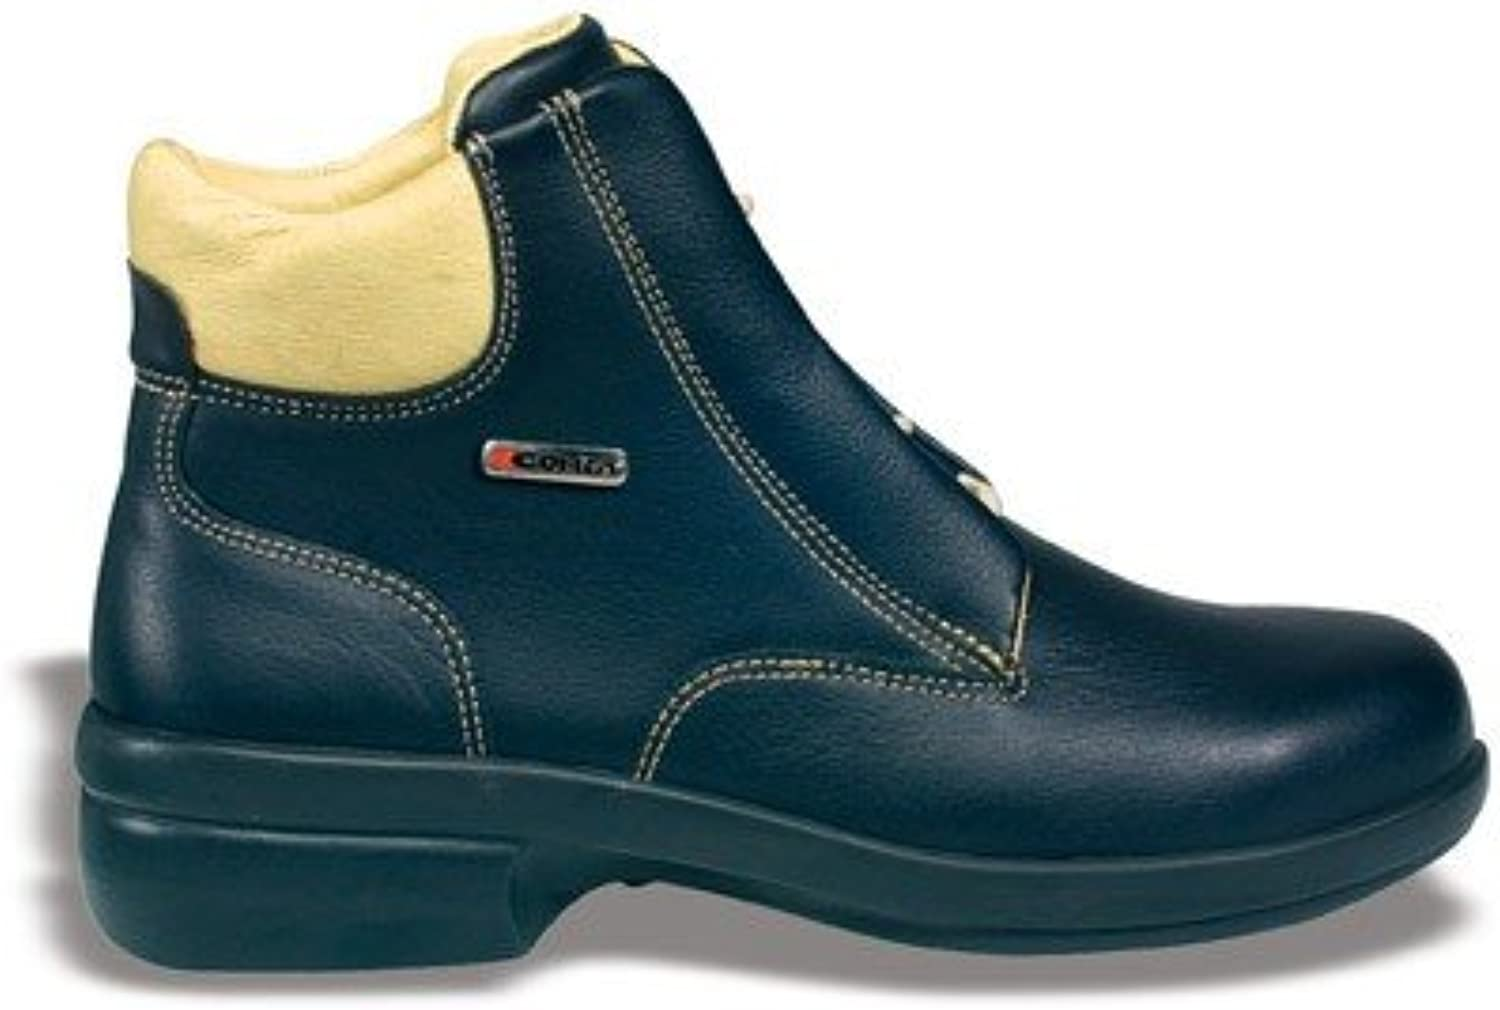 Cofra 84200-000.D39 Size 39 S2 Alexia  Safety shoes - bluee